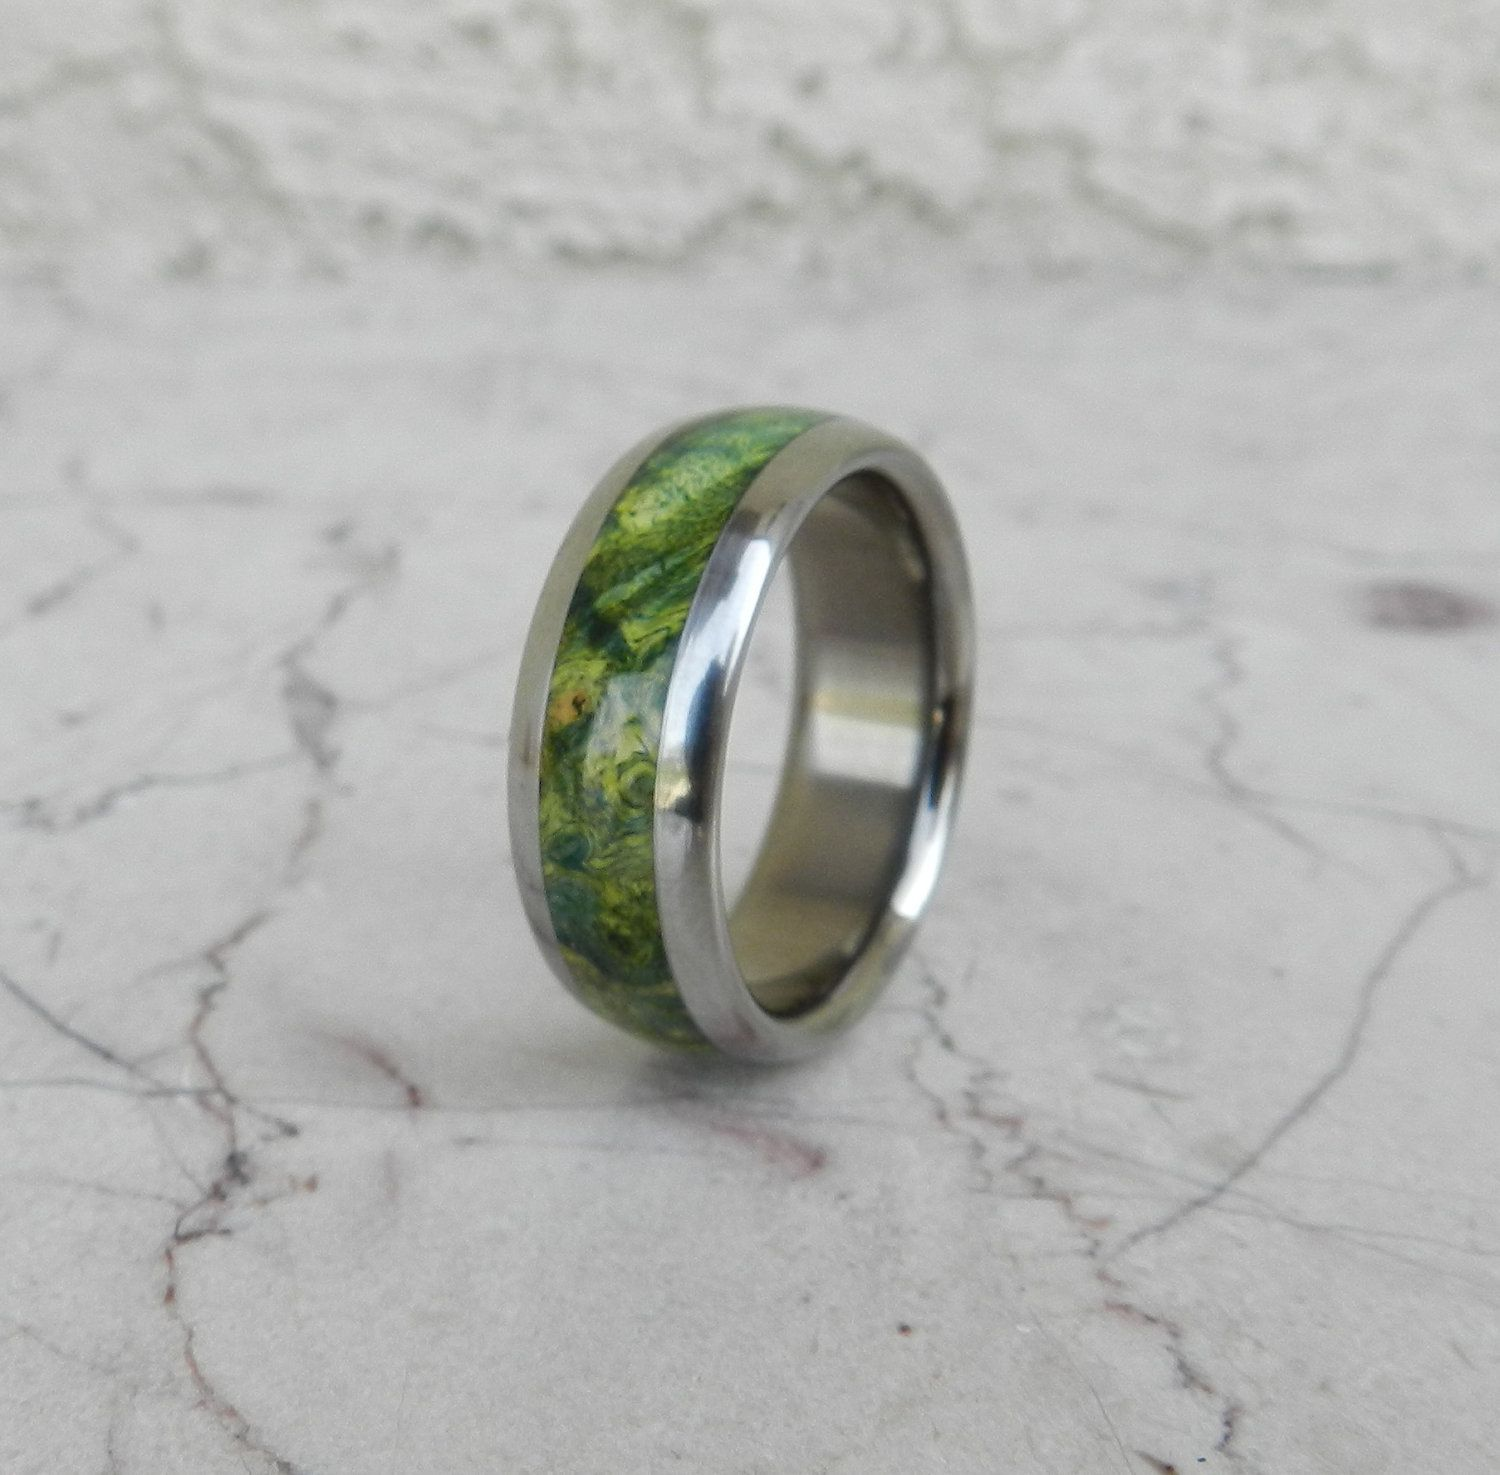 rings elegant petrified ring with pics cool wedding matvuk beautiful brilliant wood of concept mens